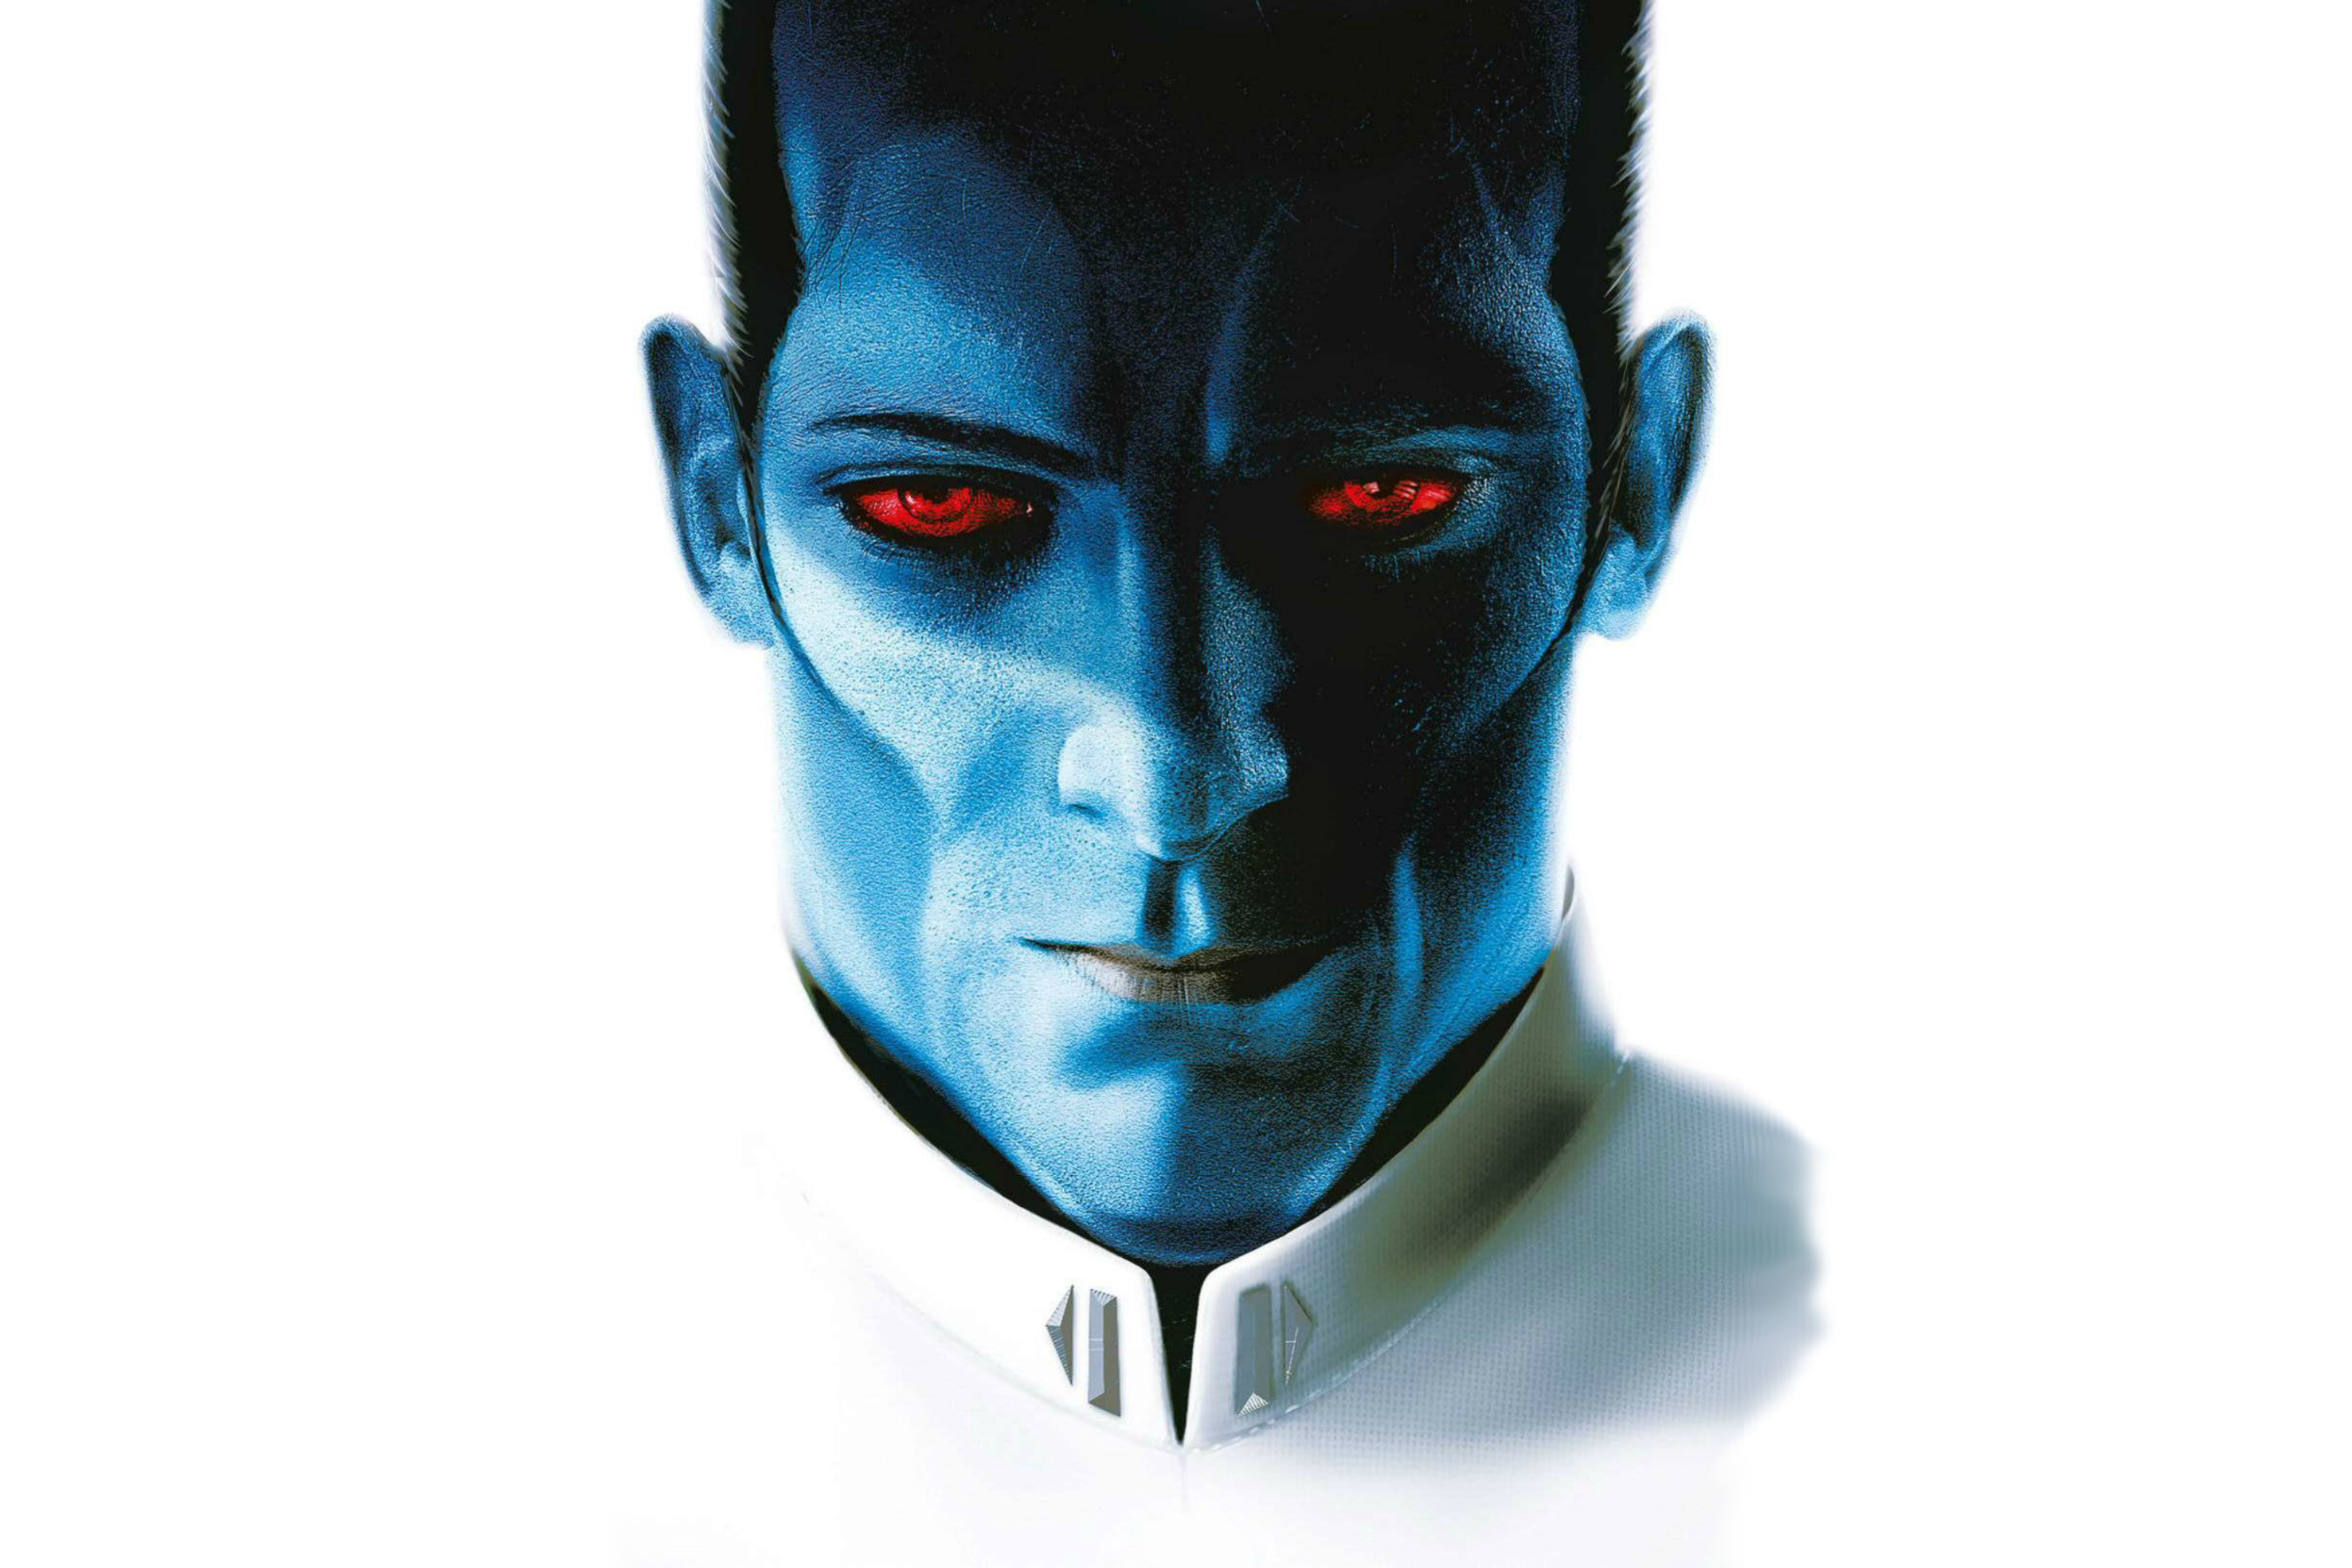 2560x1440 Grand Admiral Thrawn Star Wars Rebels 1440p Resolution Wallpaper Hd Tv Series 4k Wallpapers Images Photos And Background